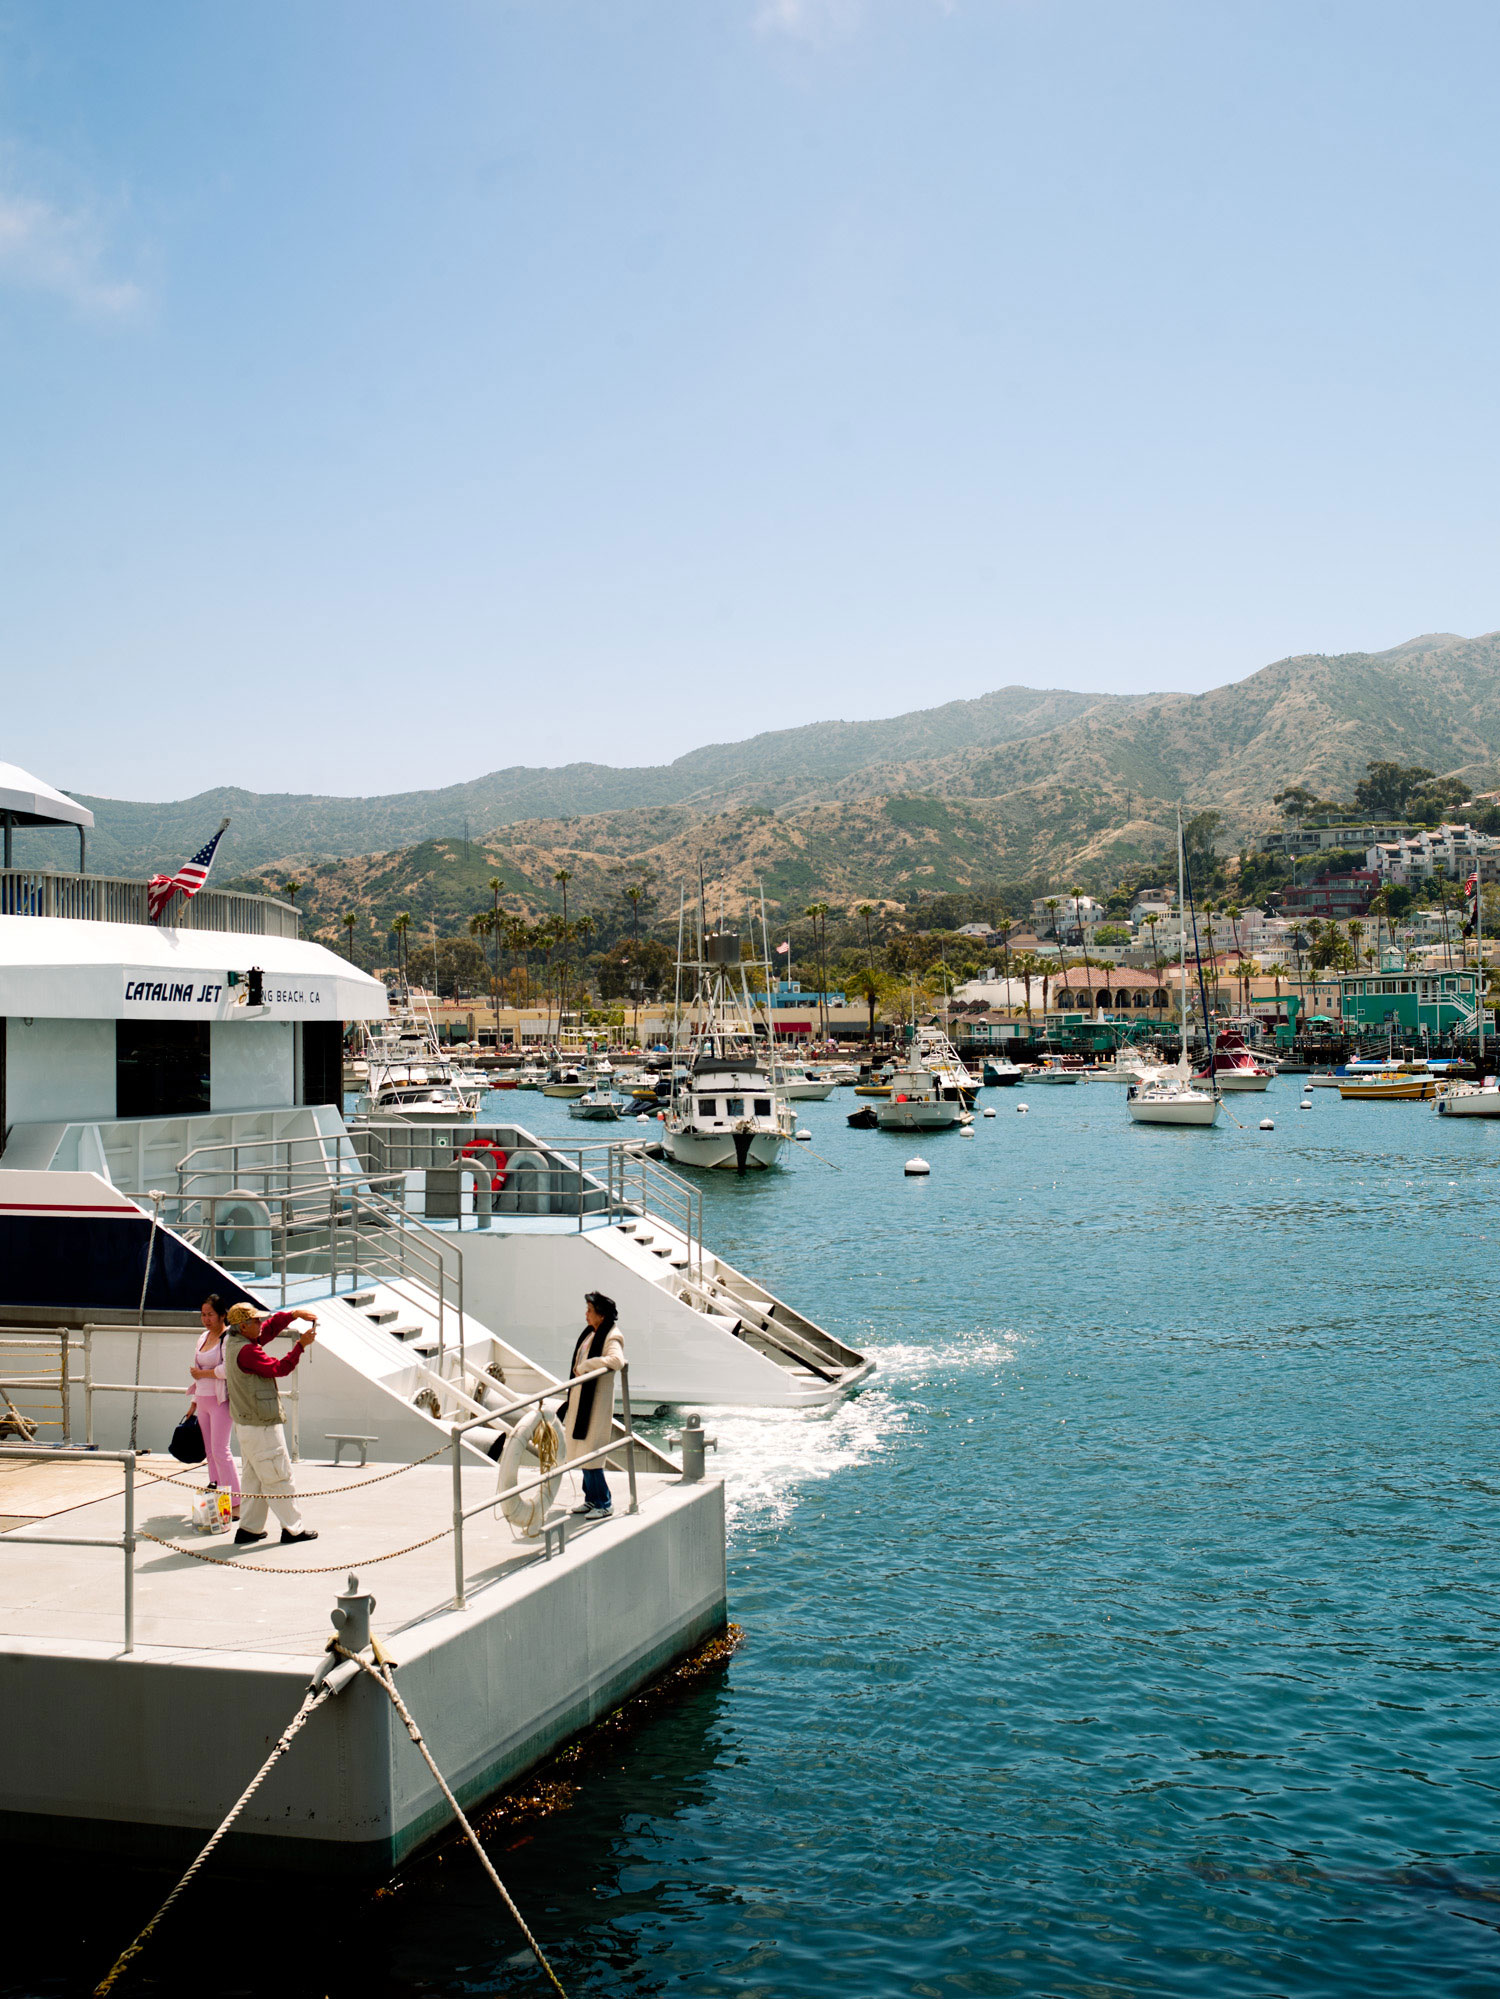 8 Reasons to Visit Catalina Island